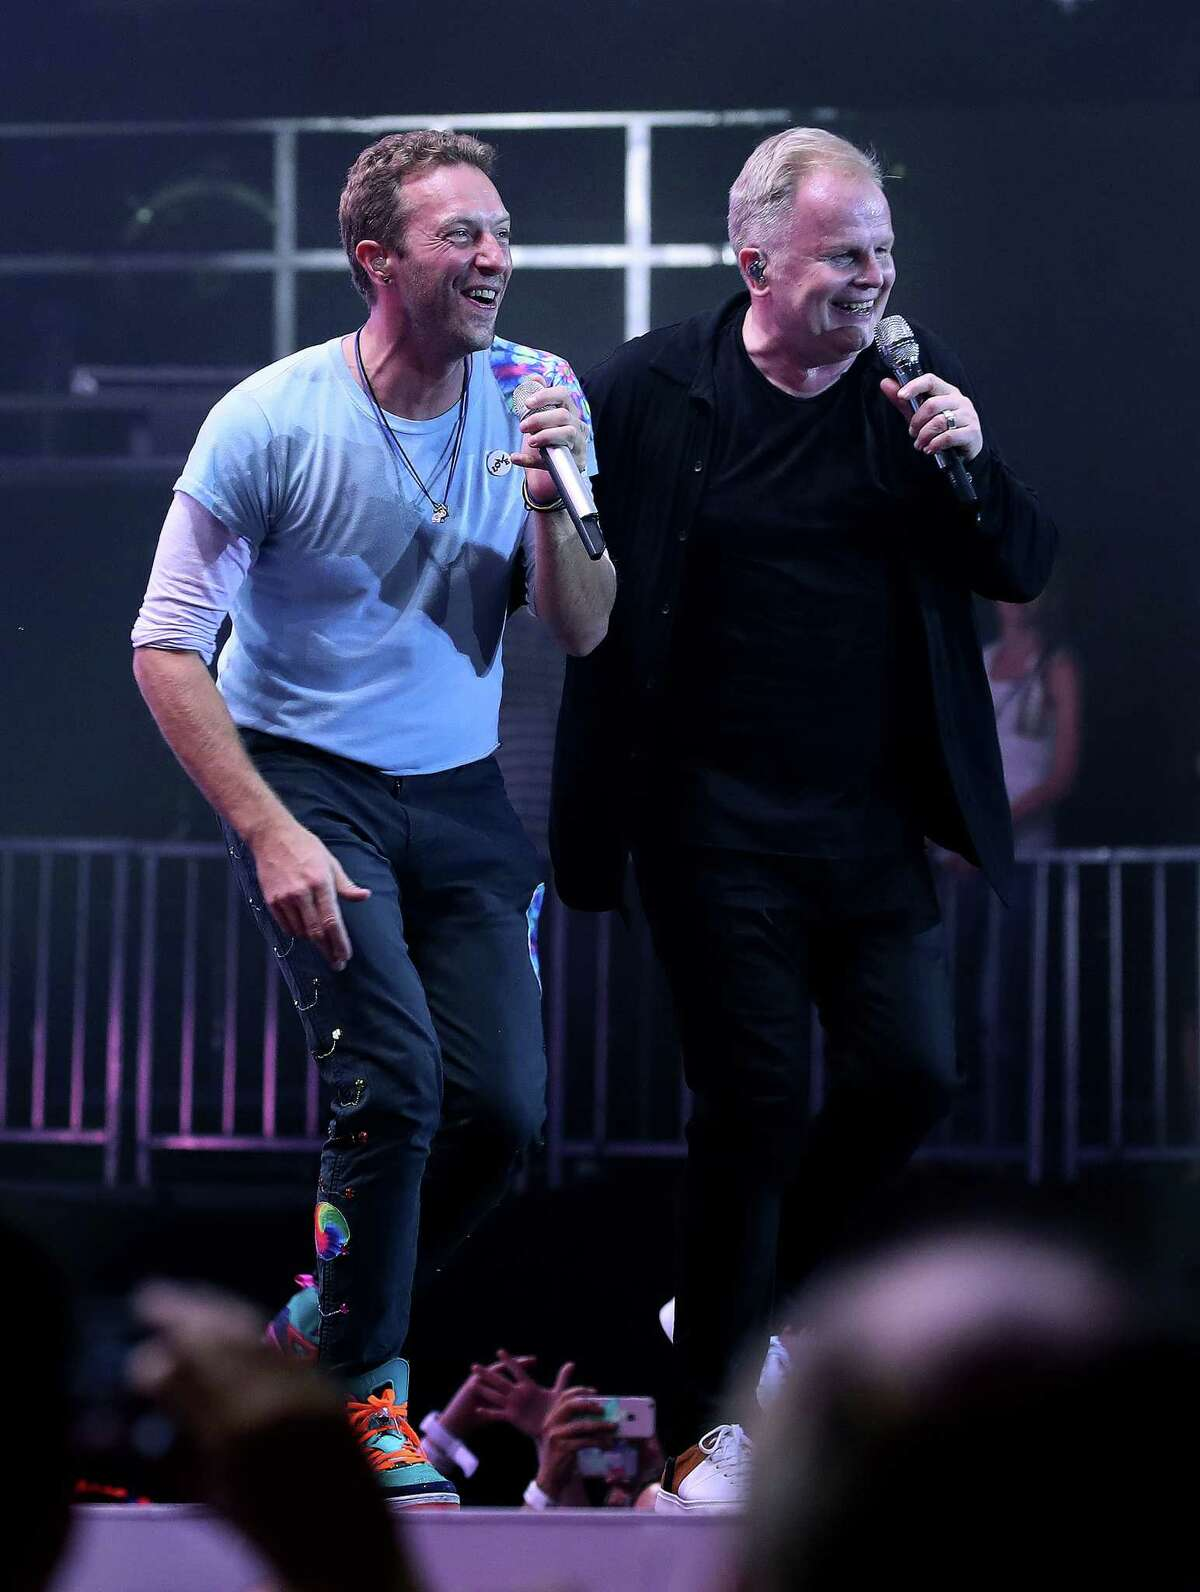 Chris Martin (L) of Coldplay and German singer Herbert Groenemeyer (R) perform on stage during the Global Citizen Festival G20 benefit concert at the Barclaycard Arena in Hamburg, northern Germany on July 6, 2017 on the eve of the G20 summit. Leaders of the world's top economies will gather from July 7 to 8, 2017 in Germany for likely the stormiest G20 summit in years, with disagreements ranging from wars to climate change and global trade. / AFP PHOTO / RONNY HARTMANNRONNY HARTMANN/AFP/Getty Images